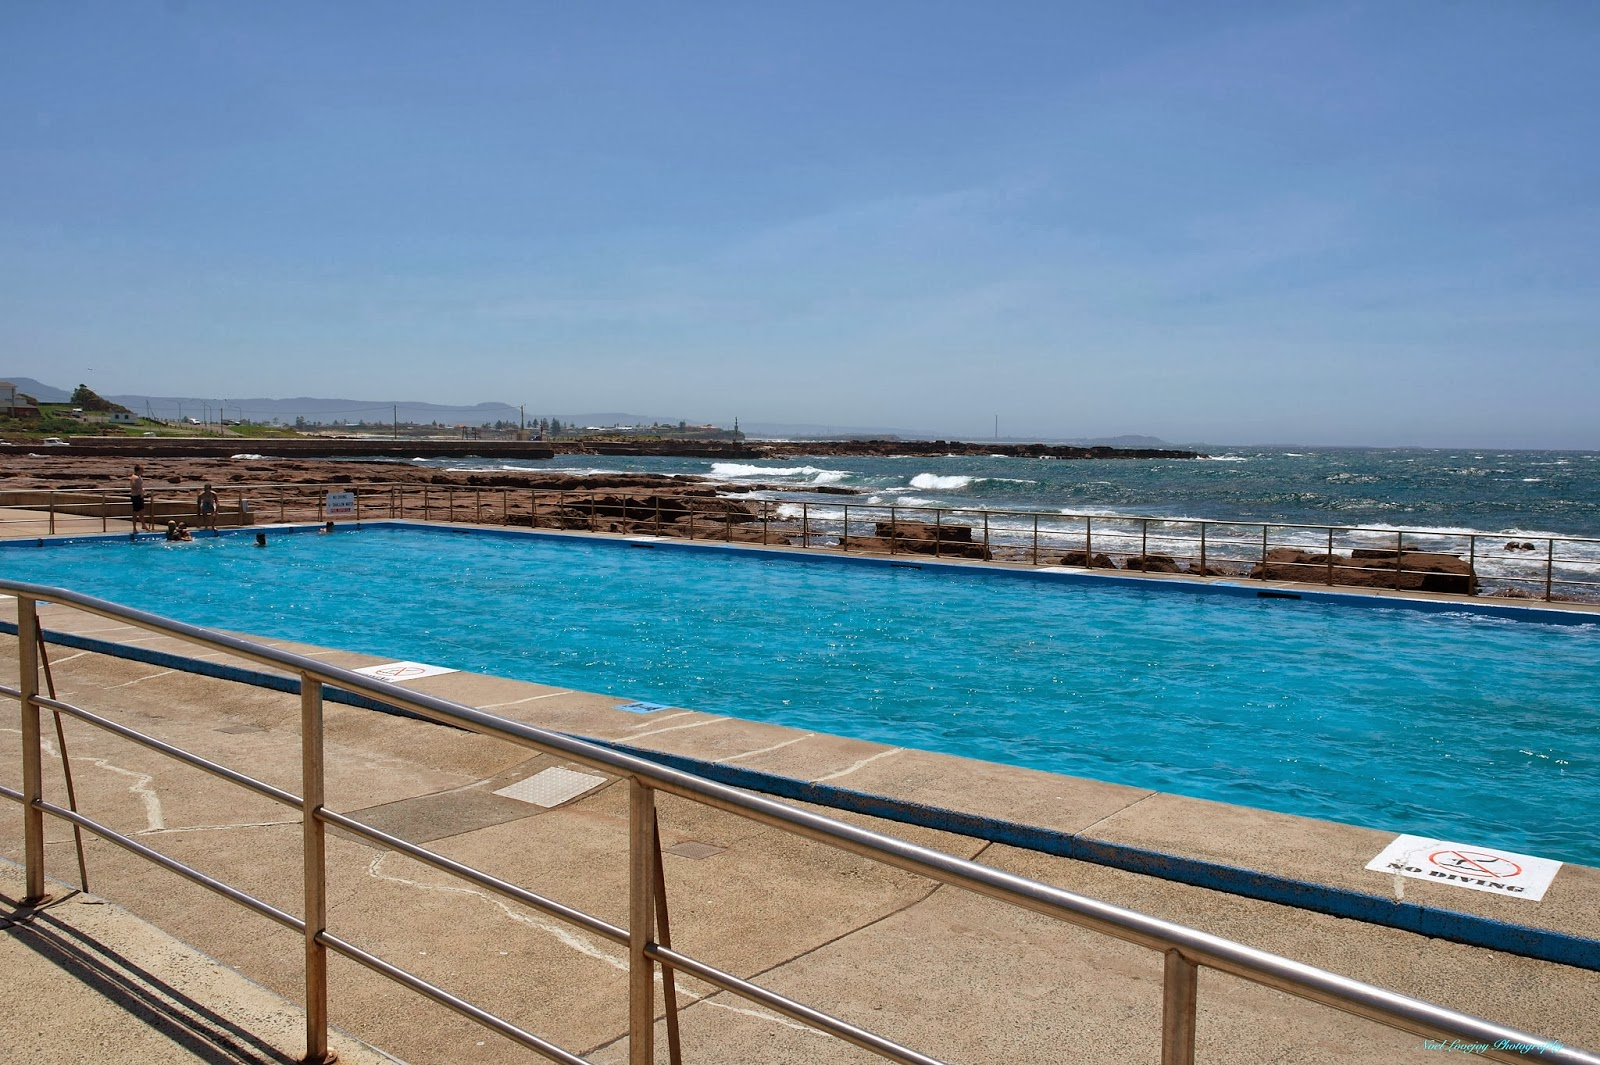 Shellharbour Australia  City new picture : Shellharbour Swimming Pool with Marina Rock Wall in the background.